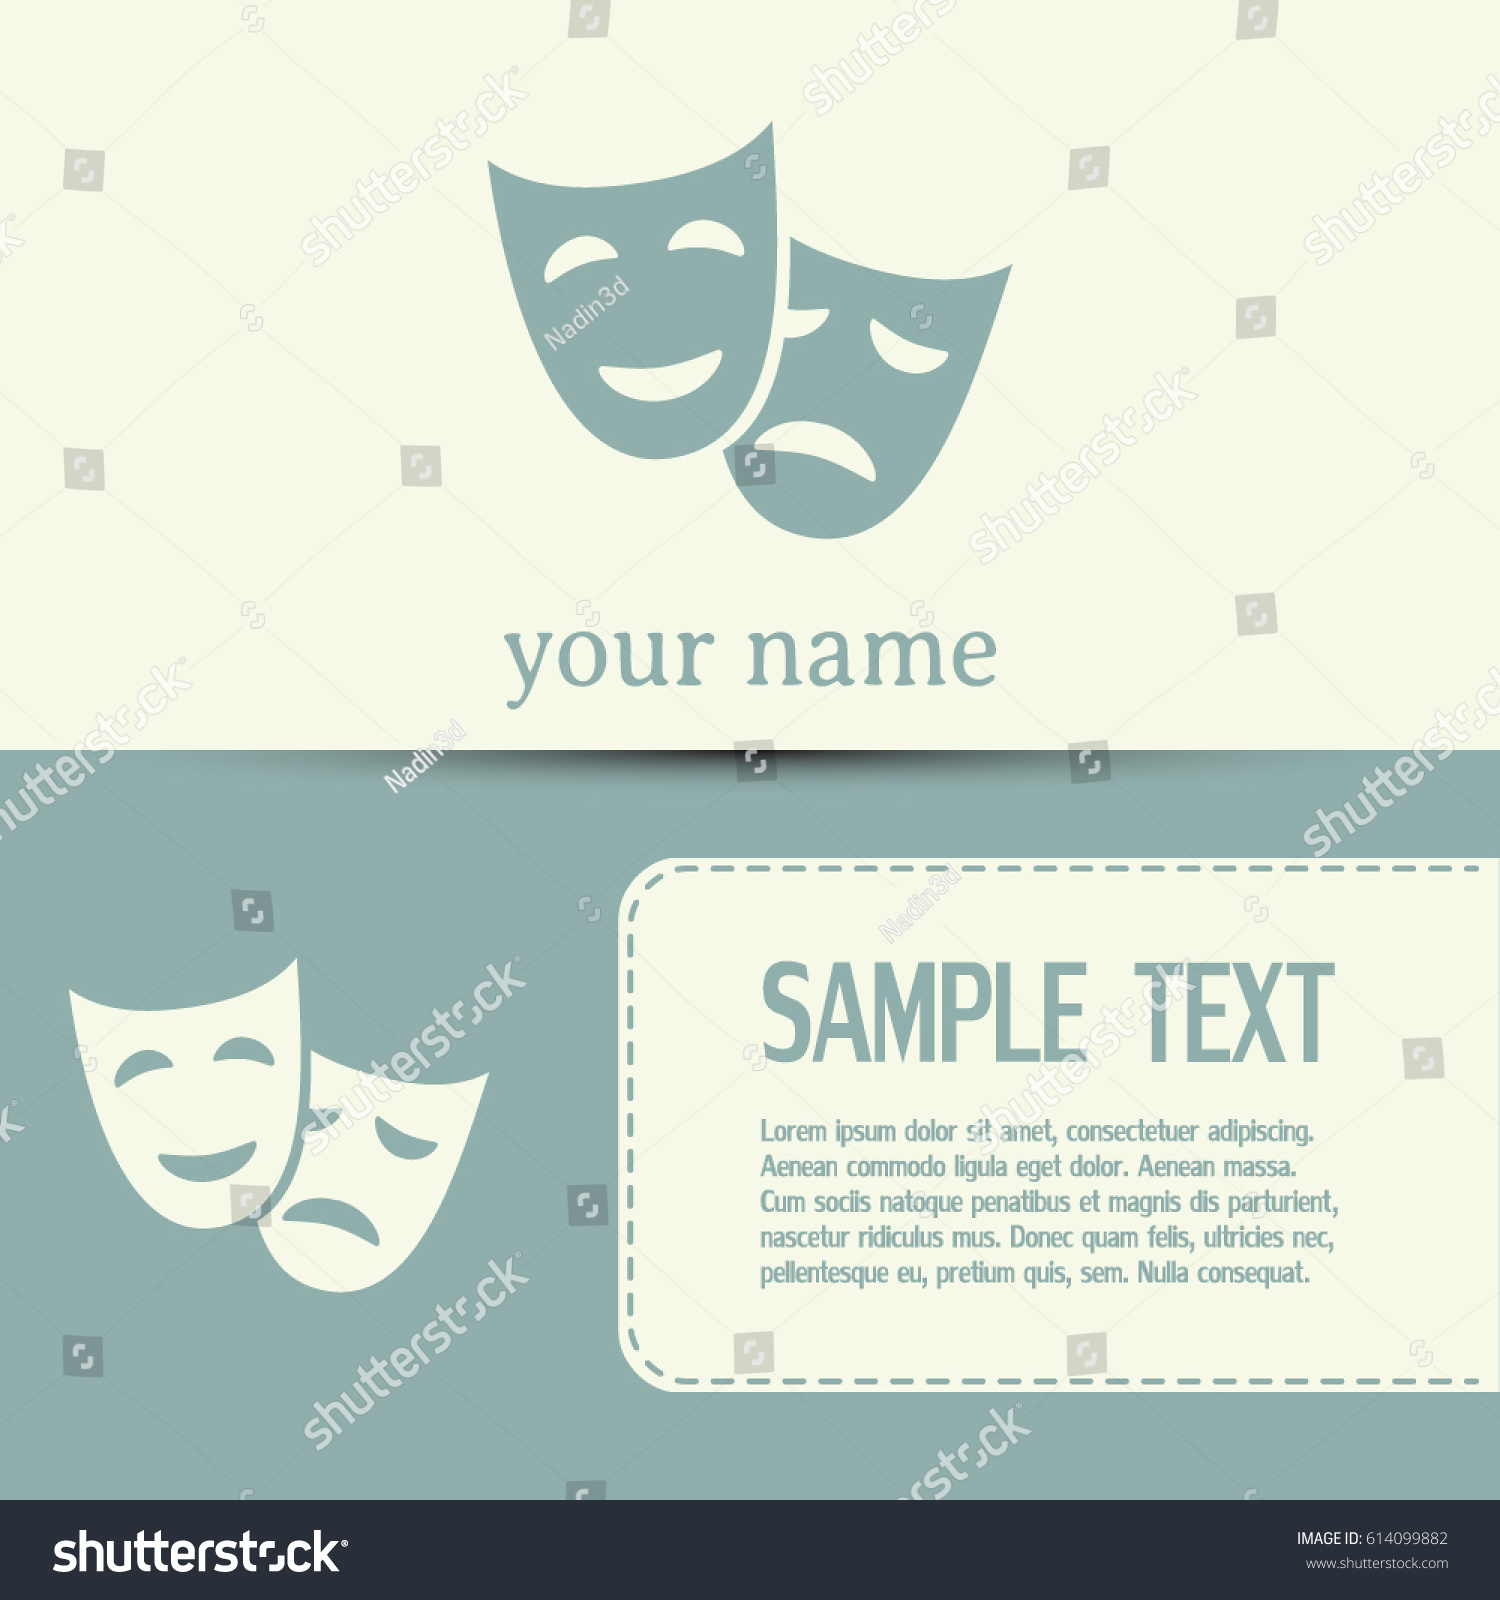 Business Cards Design Facial Mask Symbol Stock Vector 614099882 ...